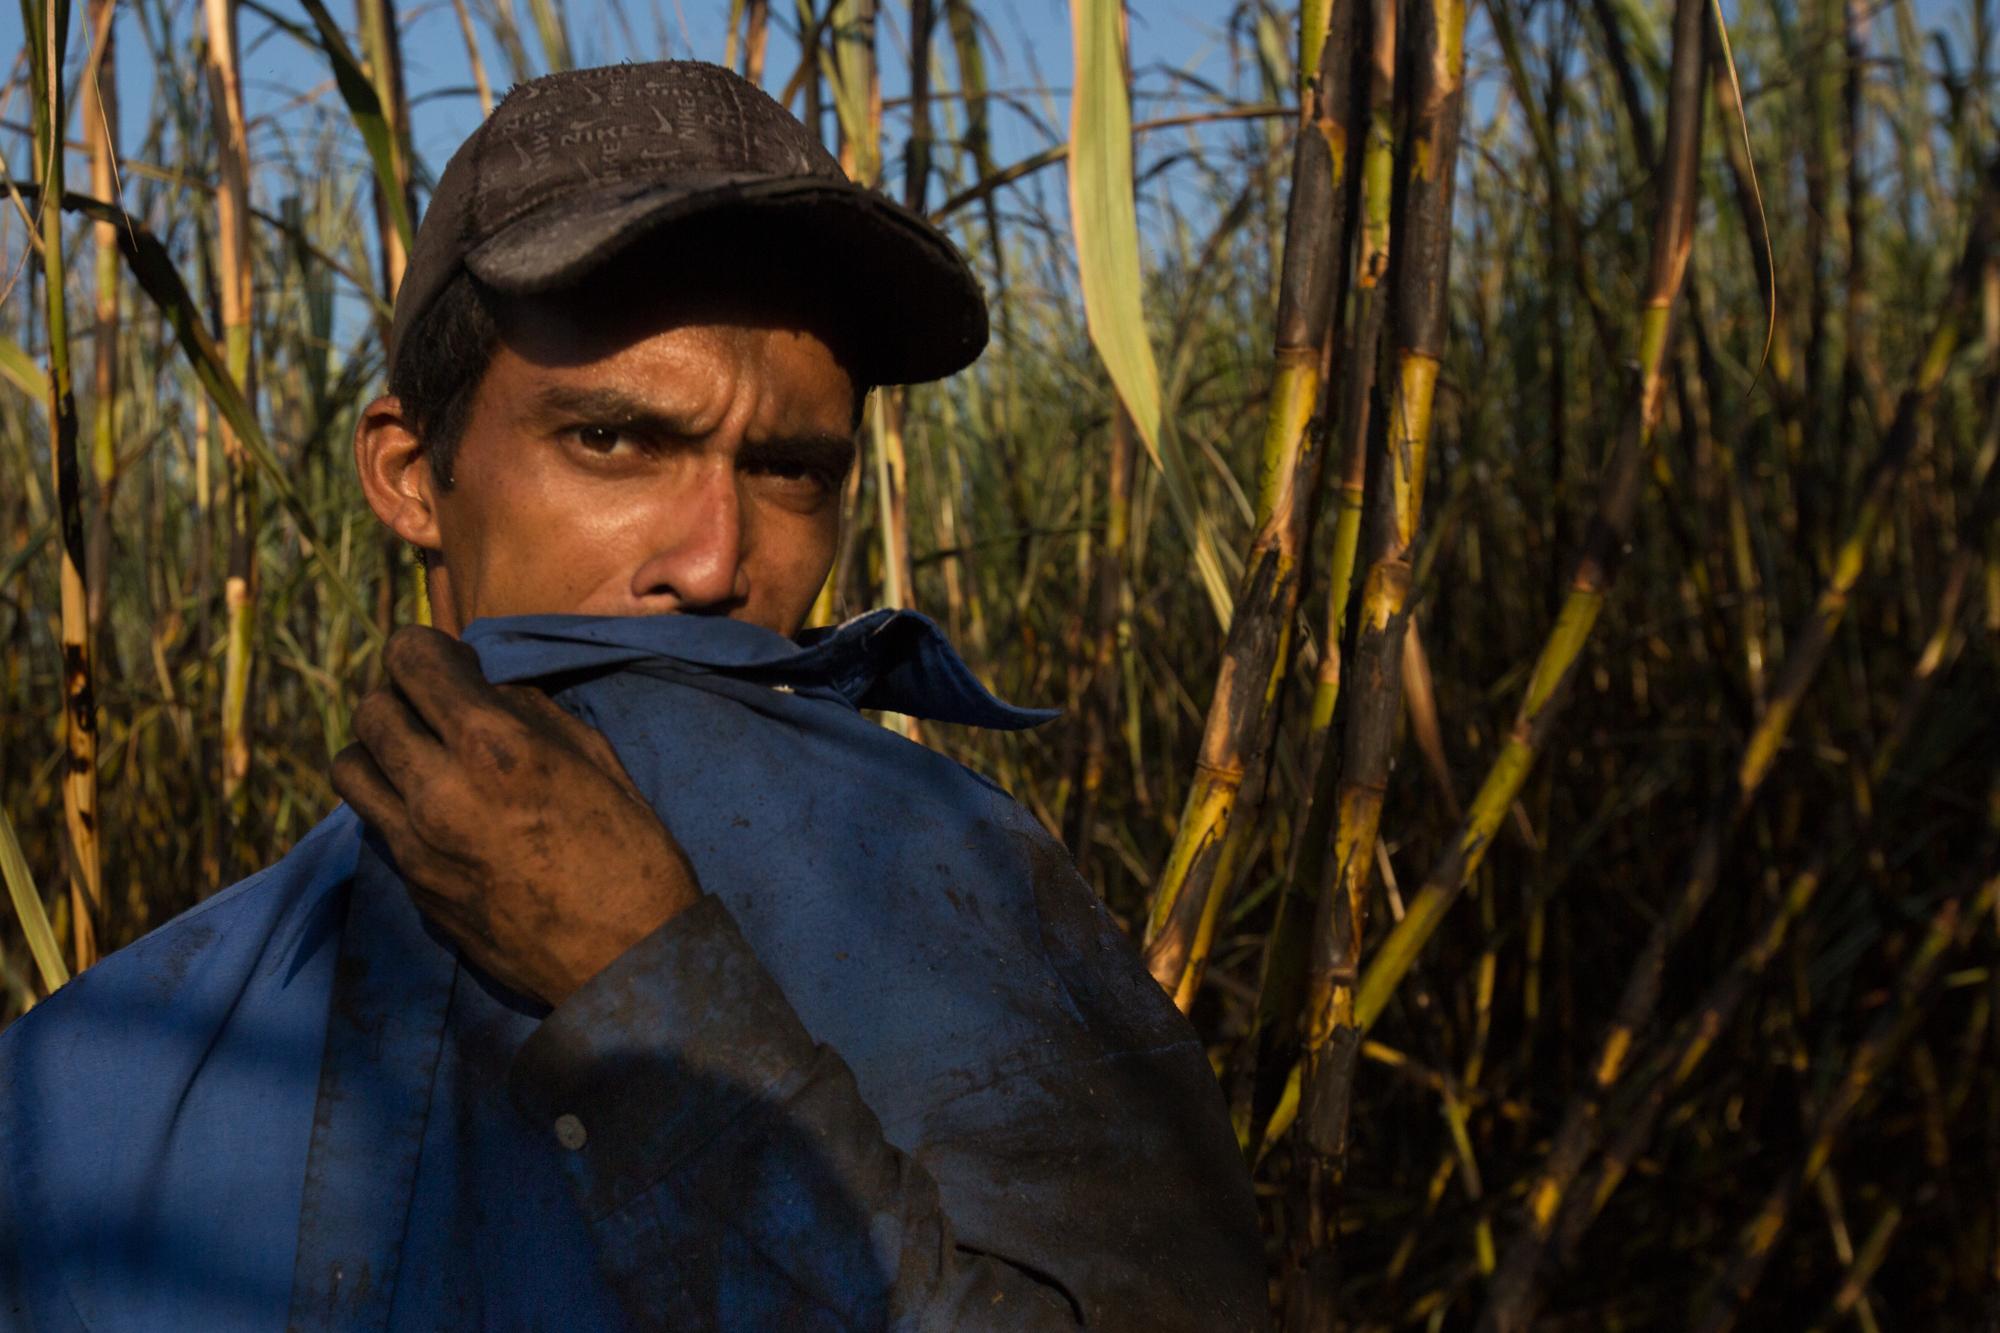 Miguel Abrego Rivera, 32, of Los Almendros, Cuscatlan, El Salvador cuts cane with a new machete as part of the WE Program. He says he can typically cut 10 tons a day with the new one, but today only 5 due to bad conditions of the sugarcane. He finished his studies in accounting but gave up working in the city because he prefers working in the country in agriculture.